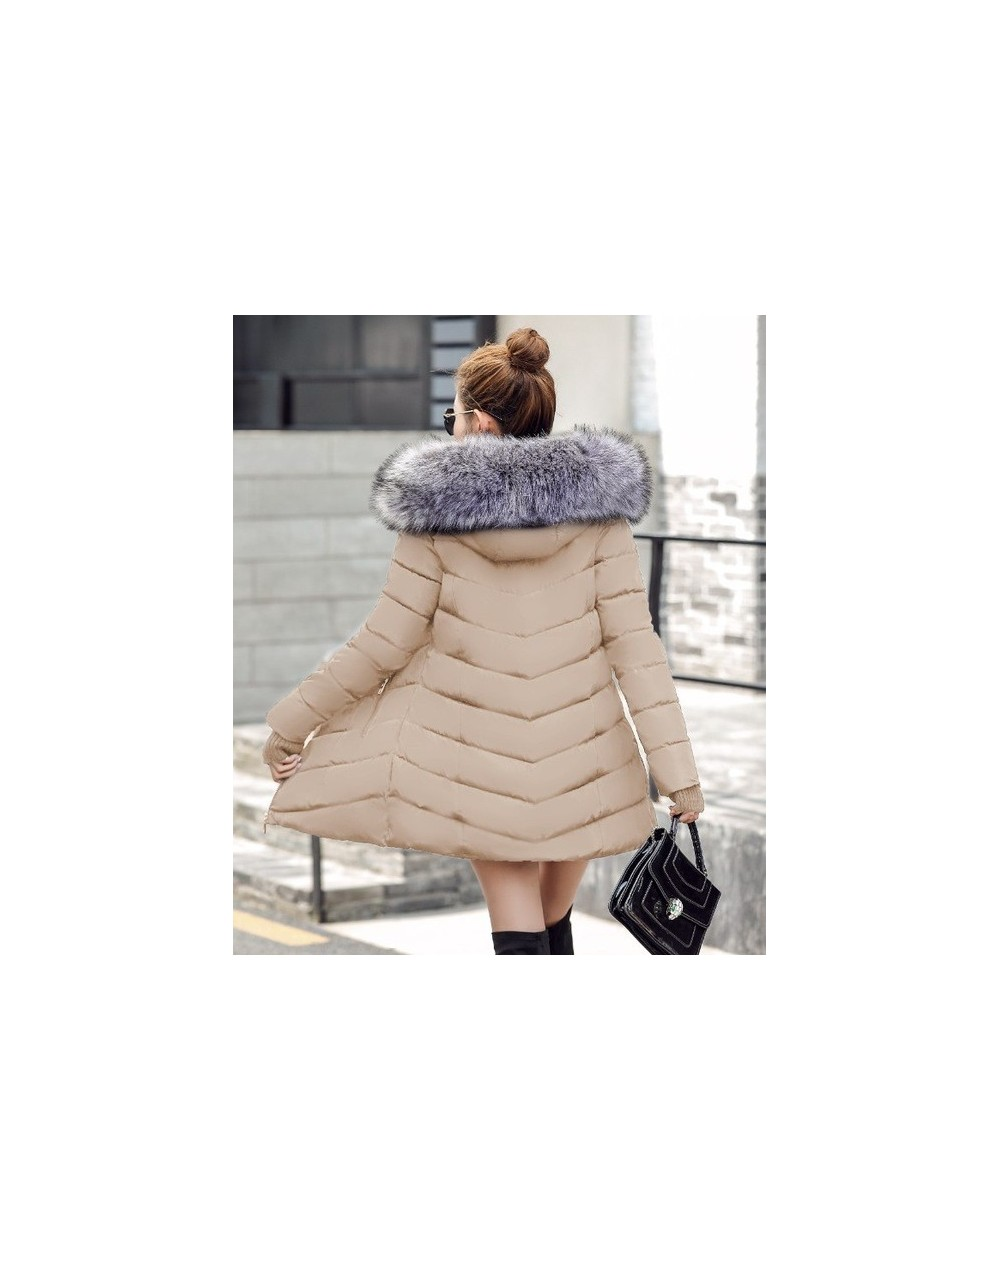 Womens Winter Jackets And Coats 2019 Thick Warm Hooded Cotton Padded Parkas For Women's Winter Jacket Female Manteau Femme -...